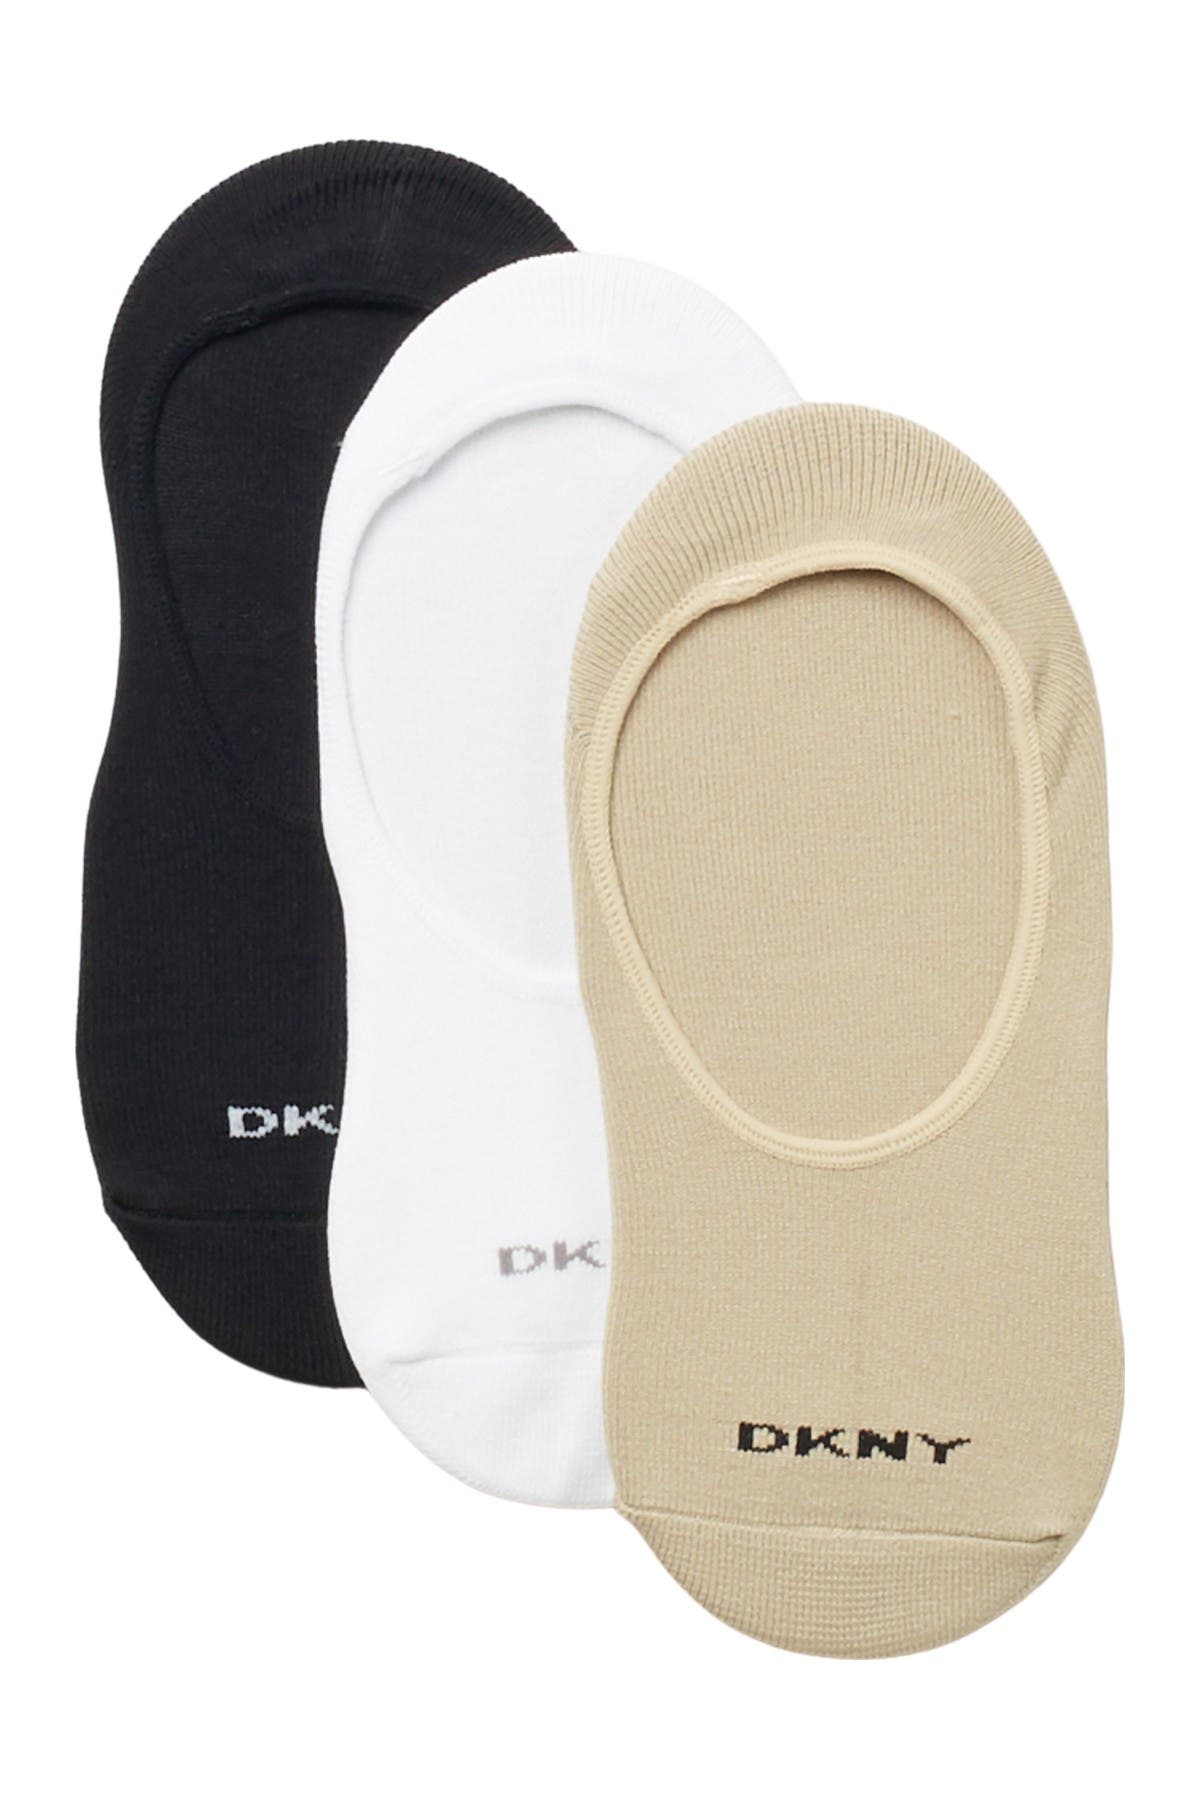 Image of DKNY Microfiber Liner Socks - Pack of 3